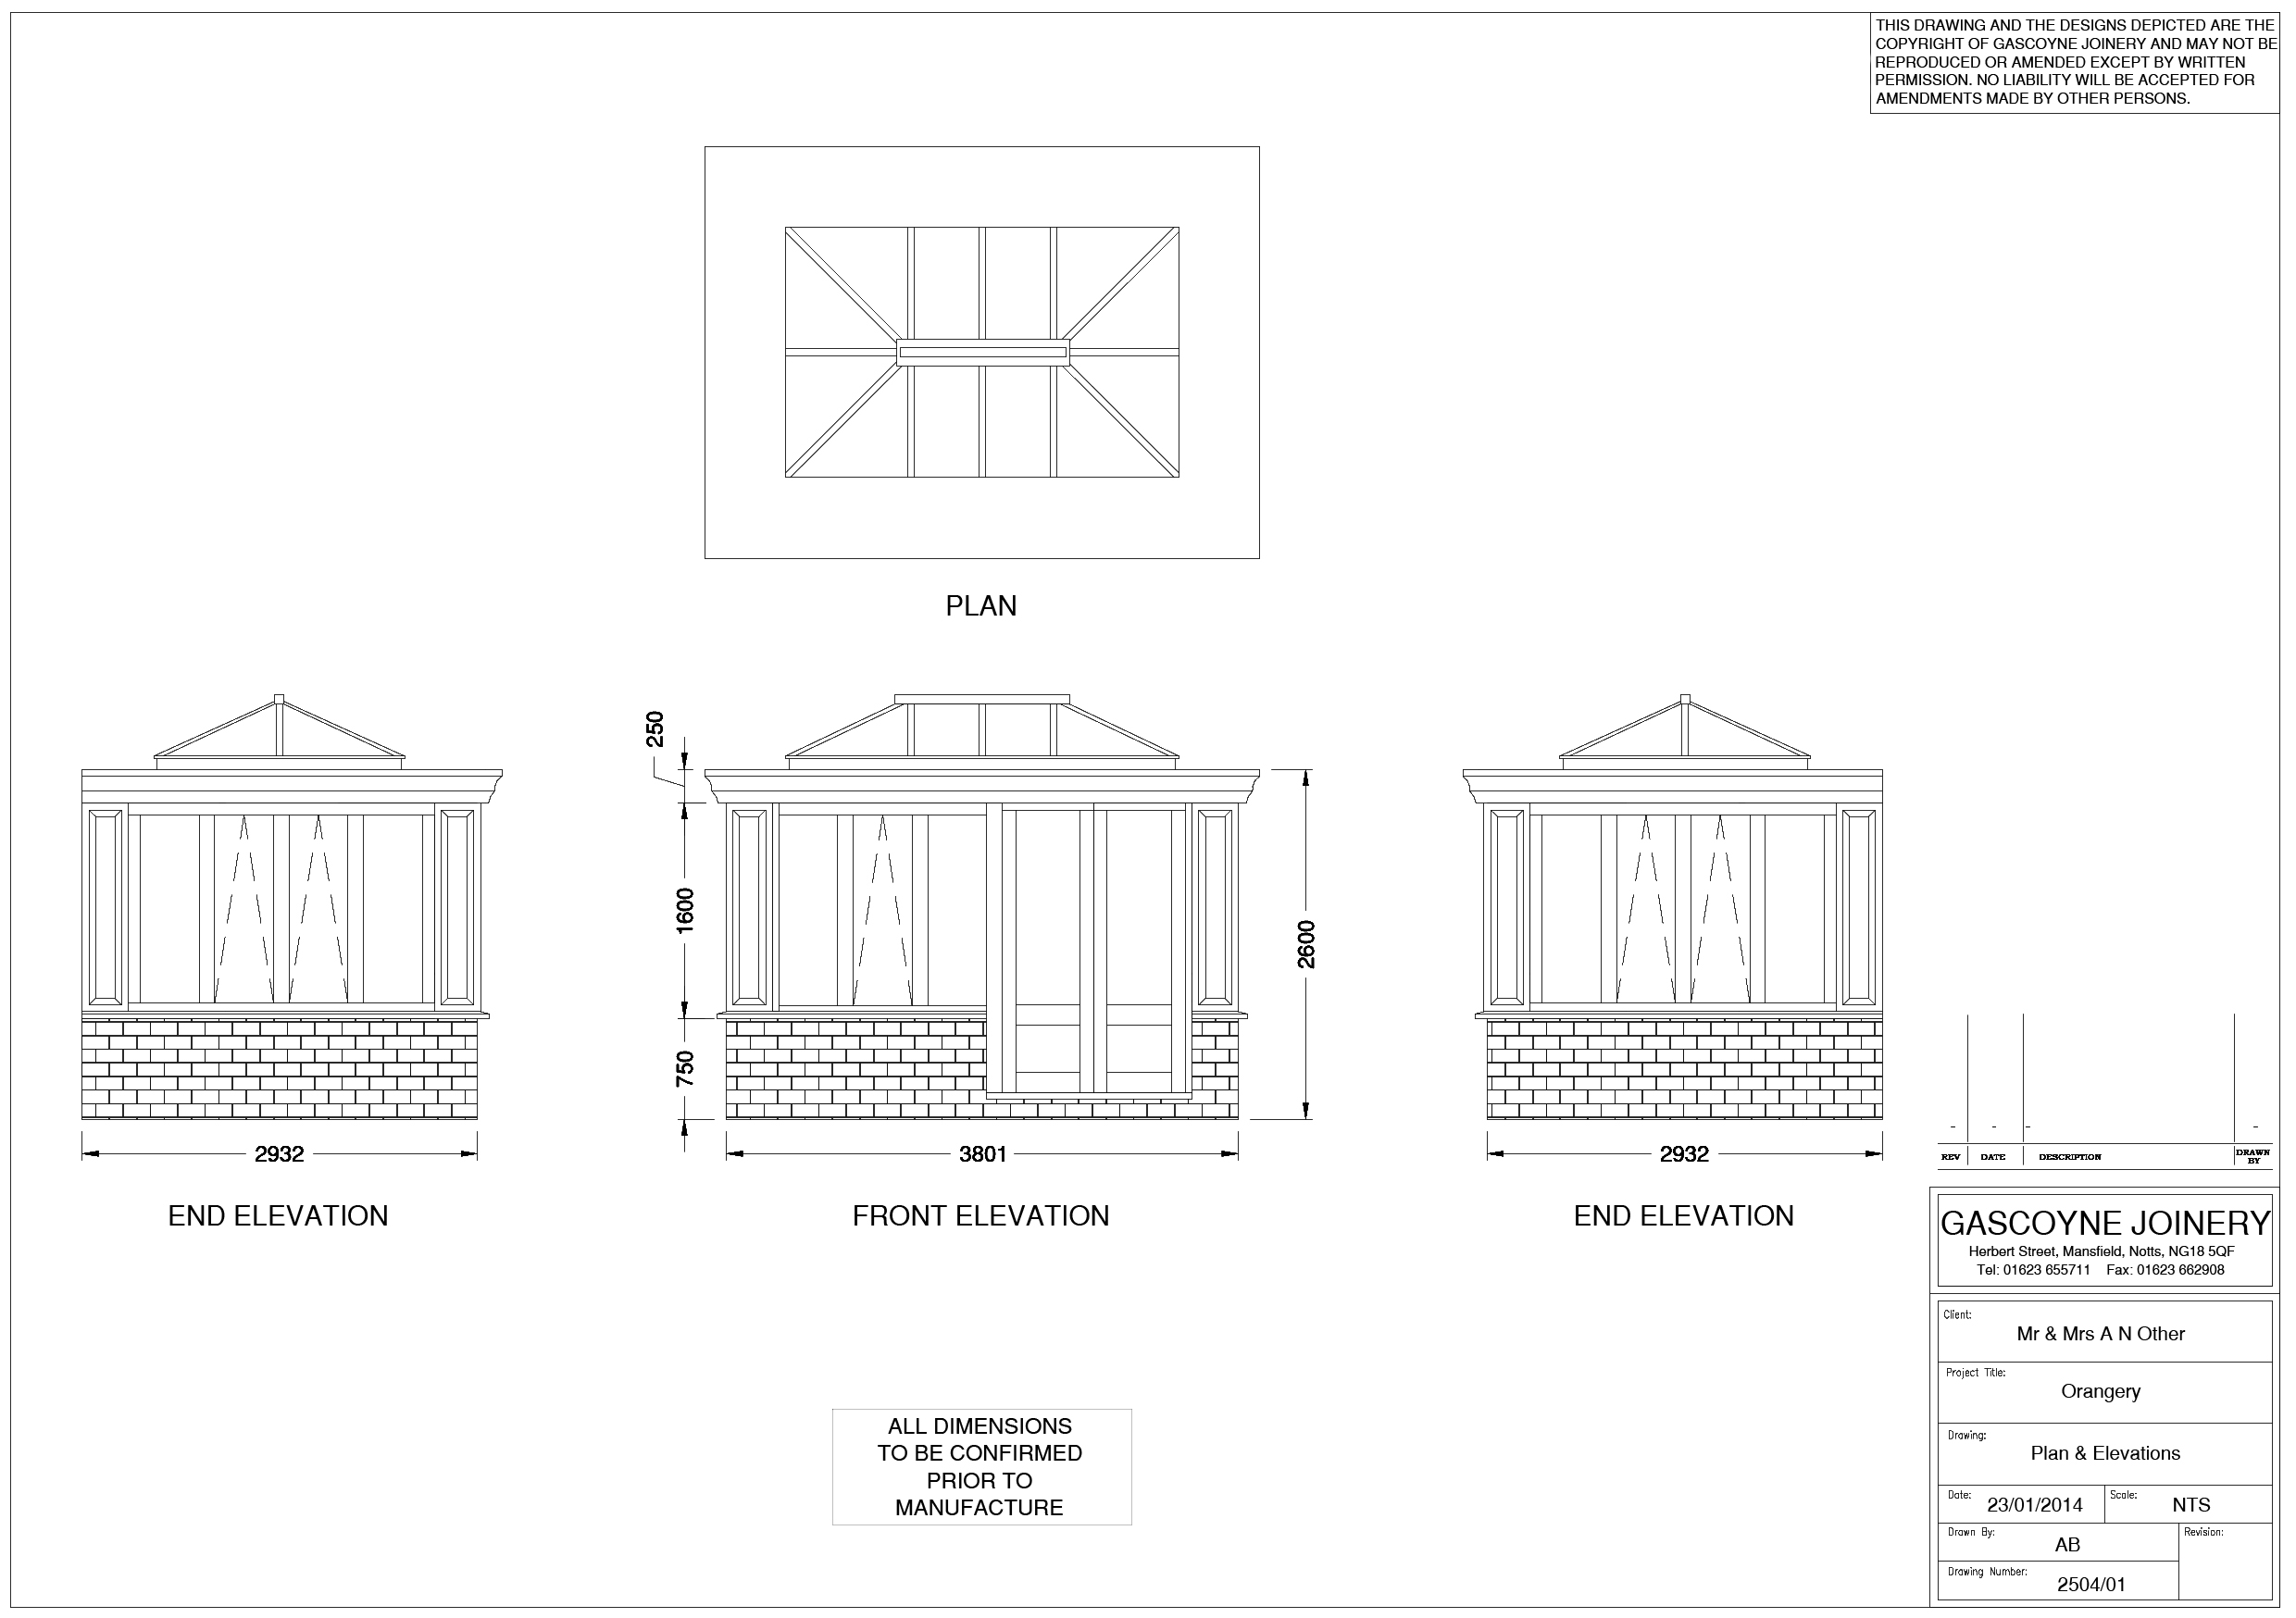 In House Cad Drawing Facilities Orangery Example Gascoyne Joinery